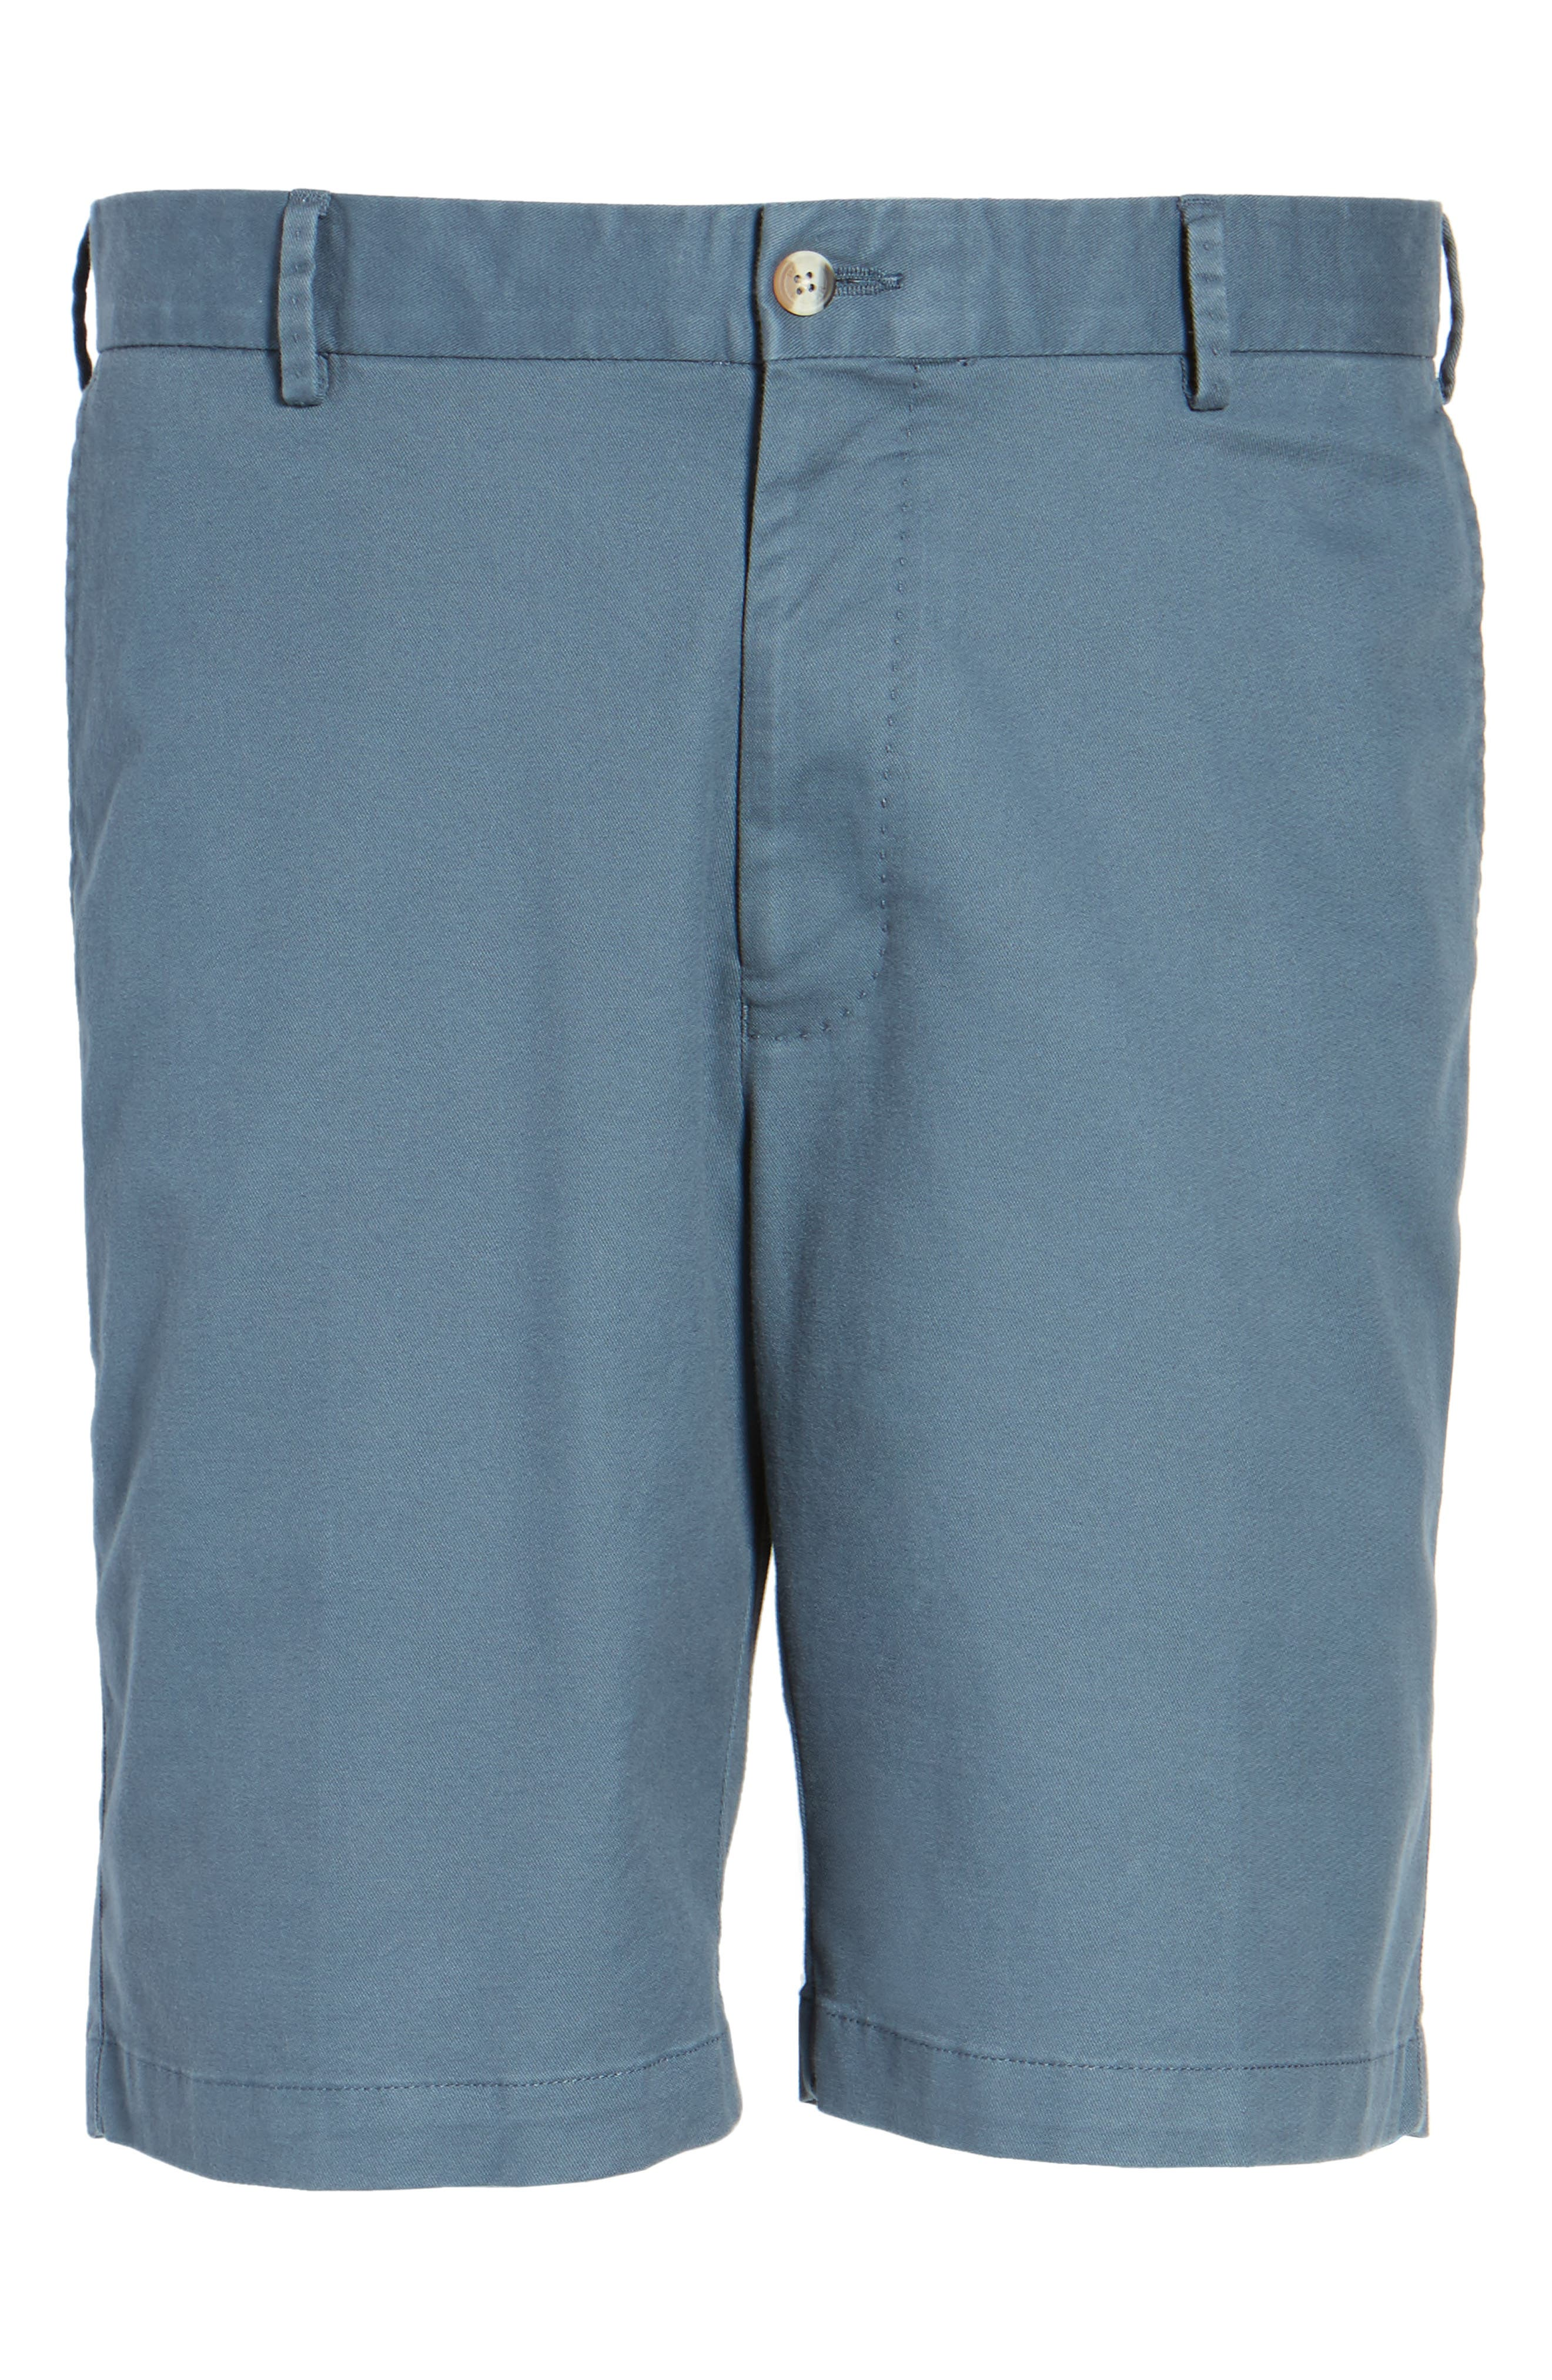 PETER MILLAR,                             Soft Touch Stretch Twill Shorts,                             Alternate thumbnail 6, color,                             NAVY